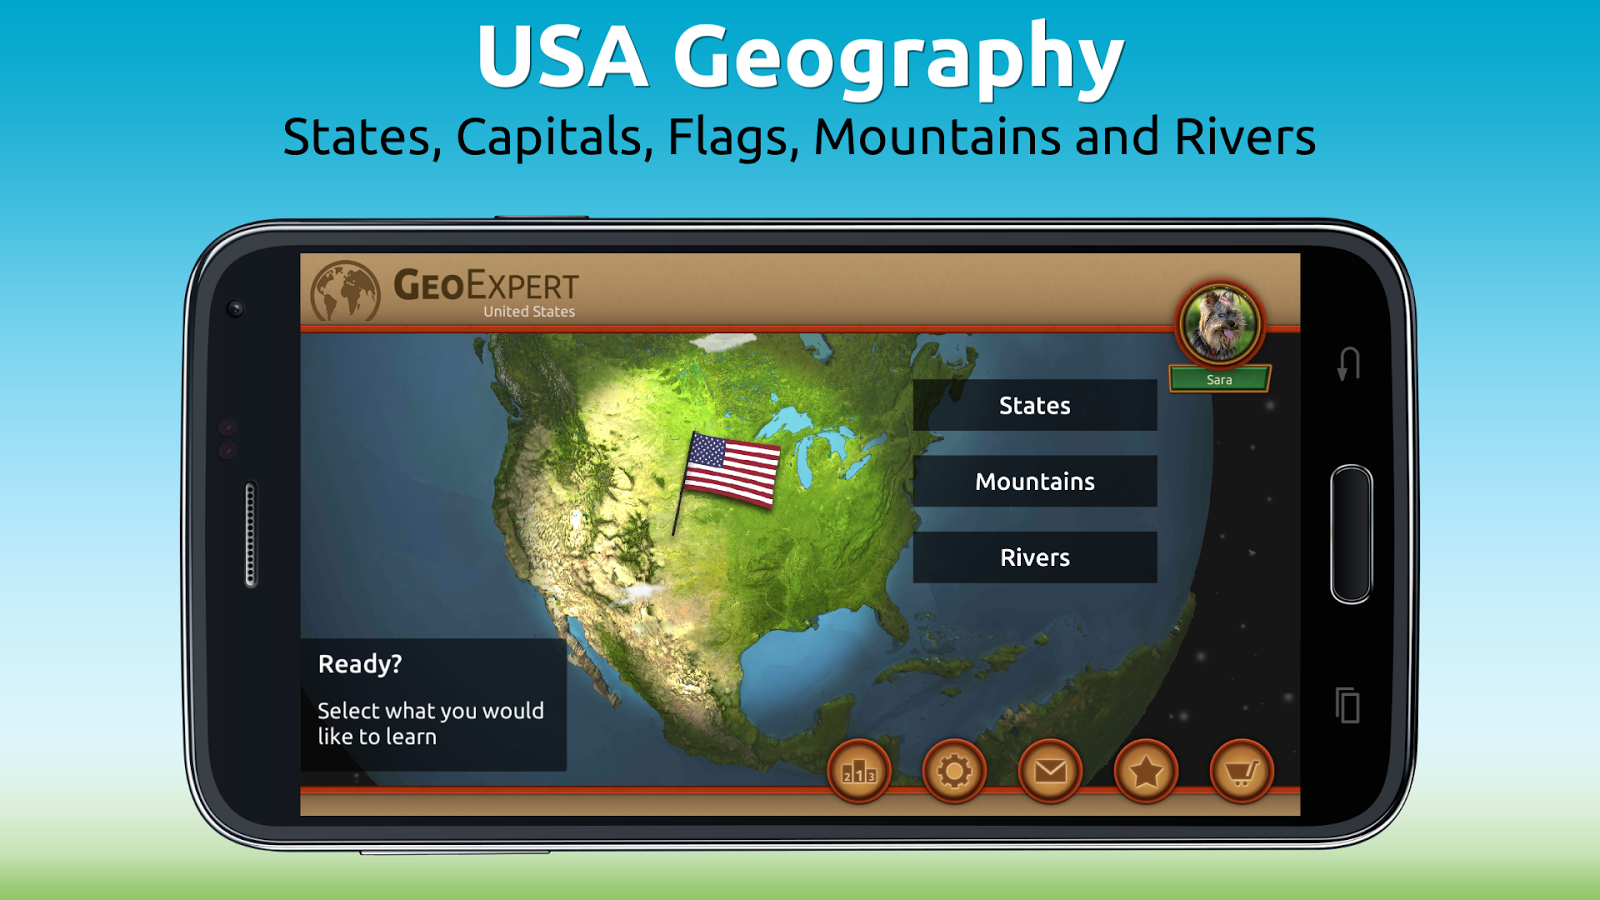 GeoExpert - USA Geography Screenshot